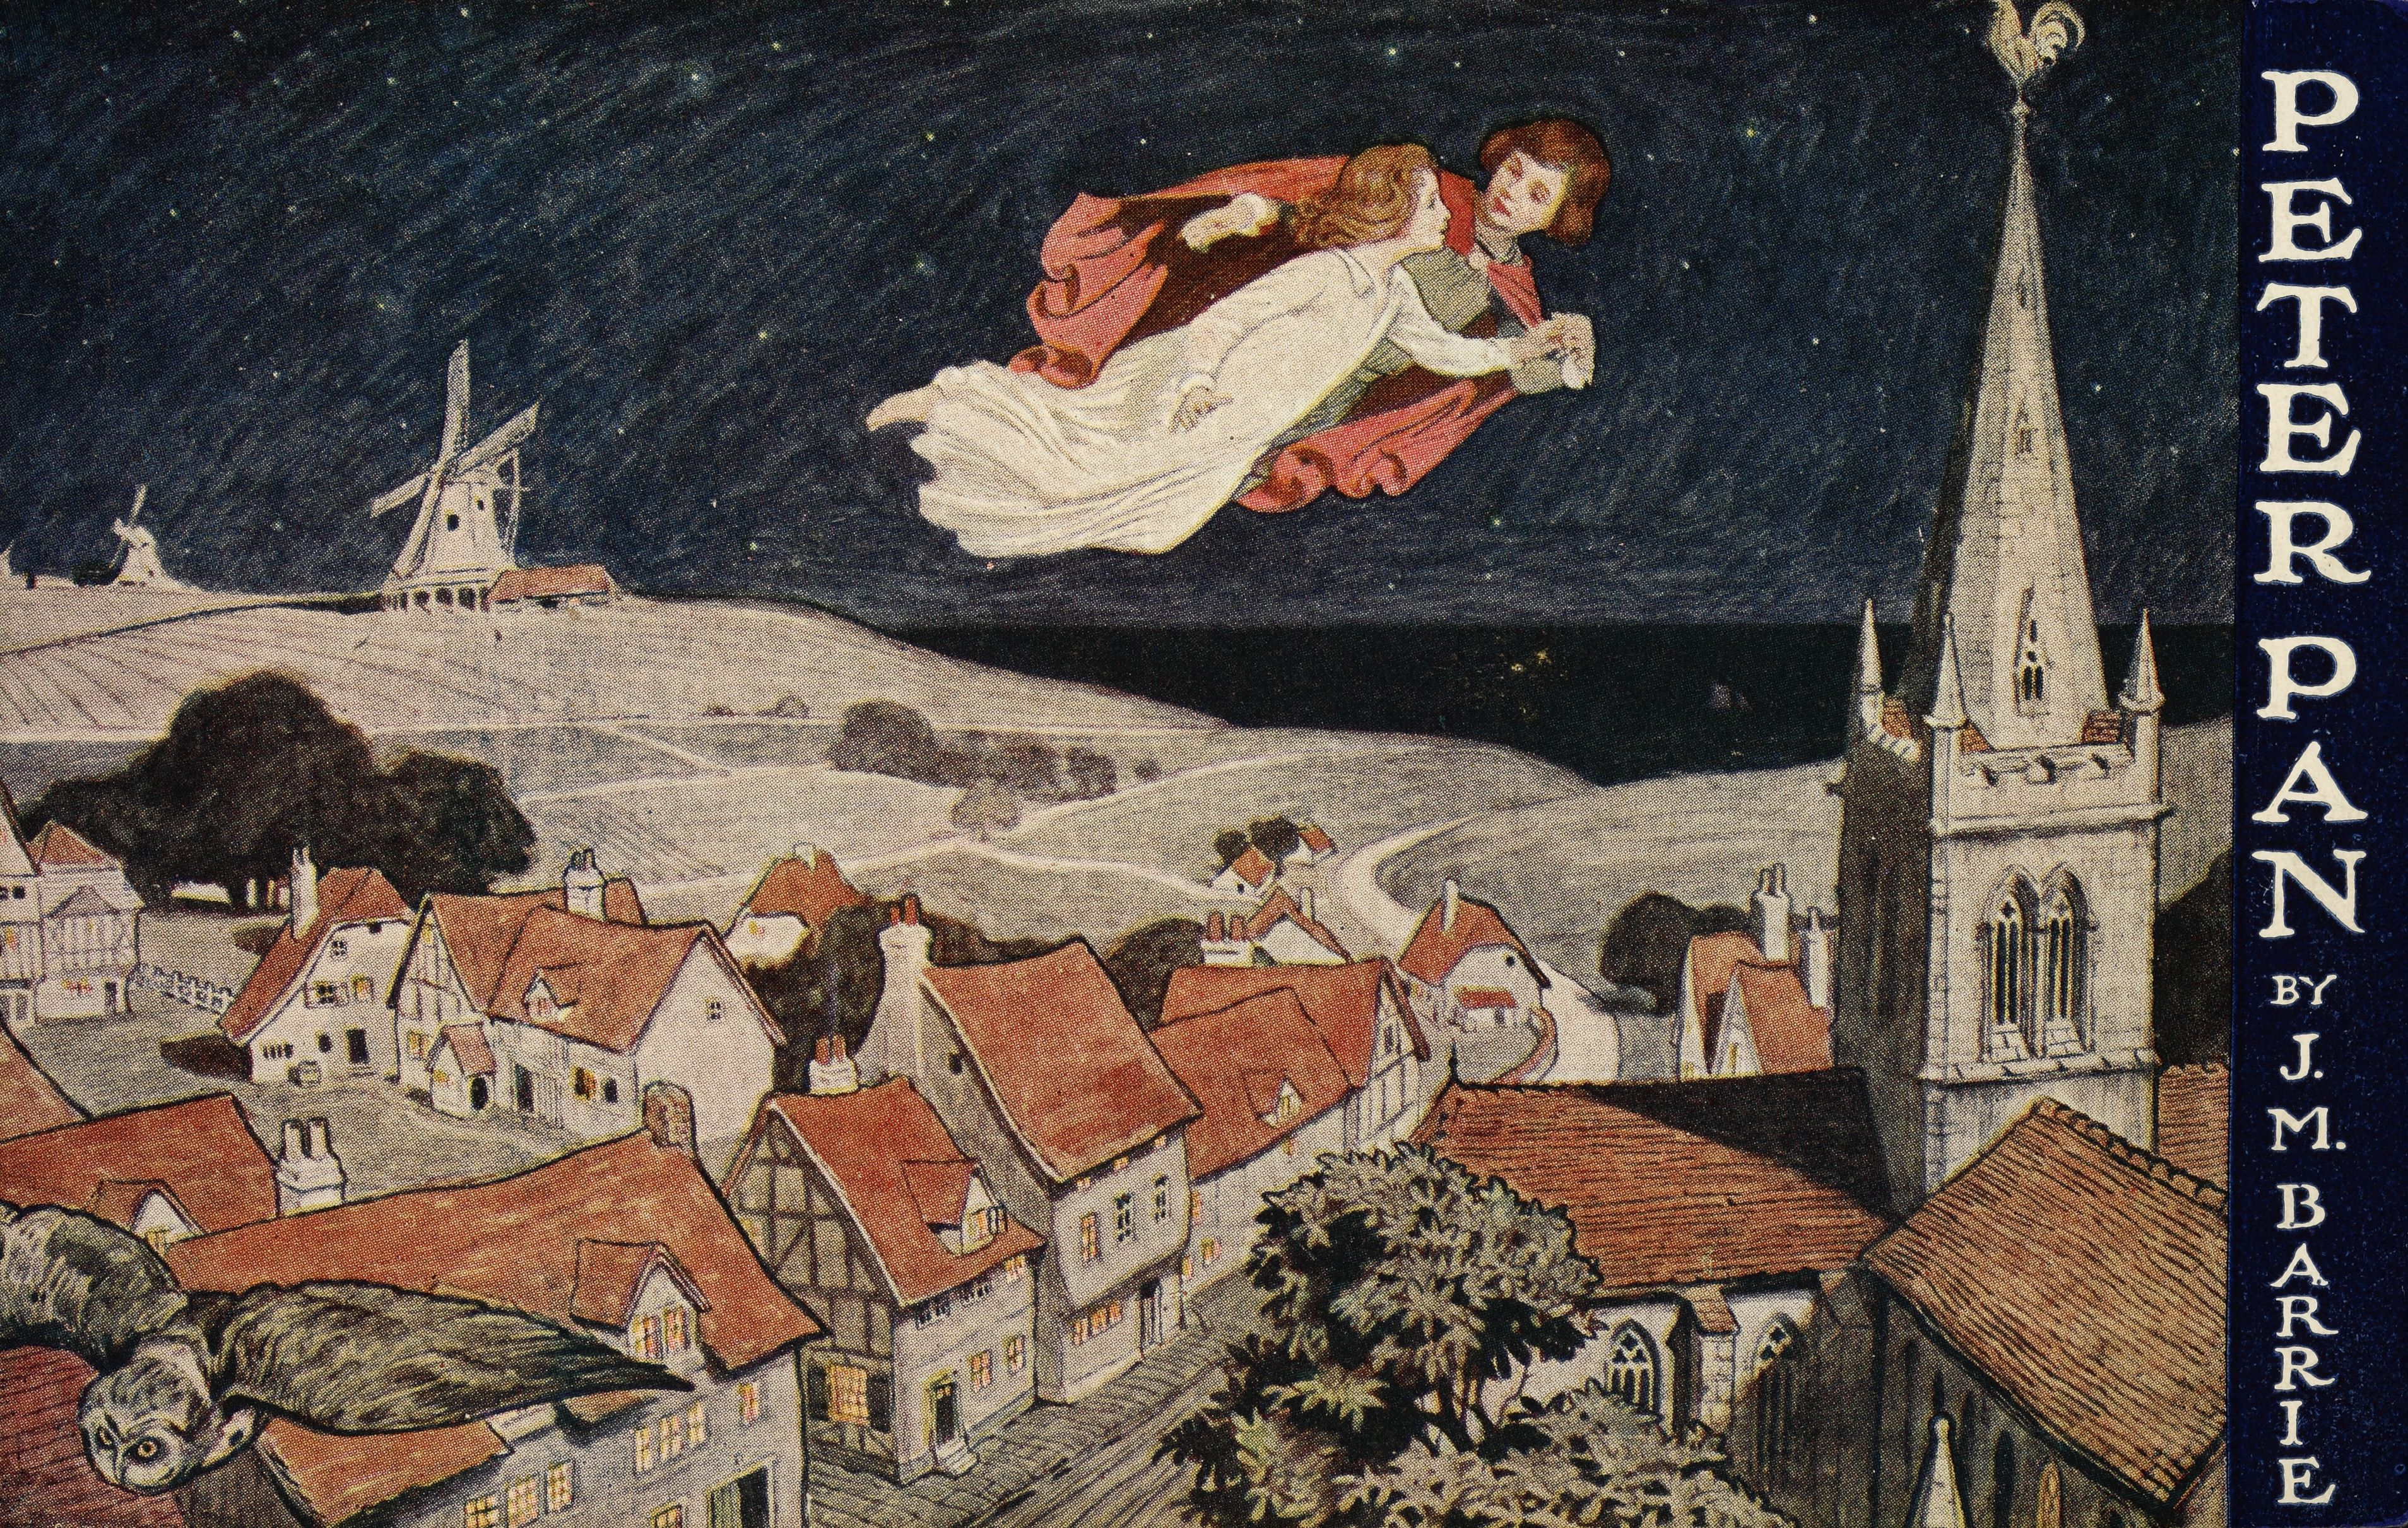 Illustration of Peter Pan and Wendy flying